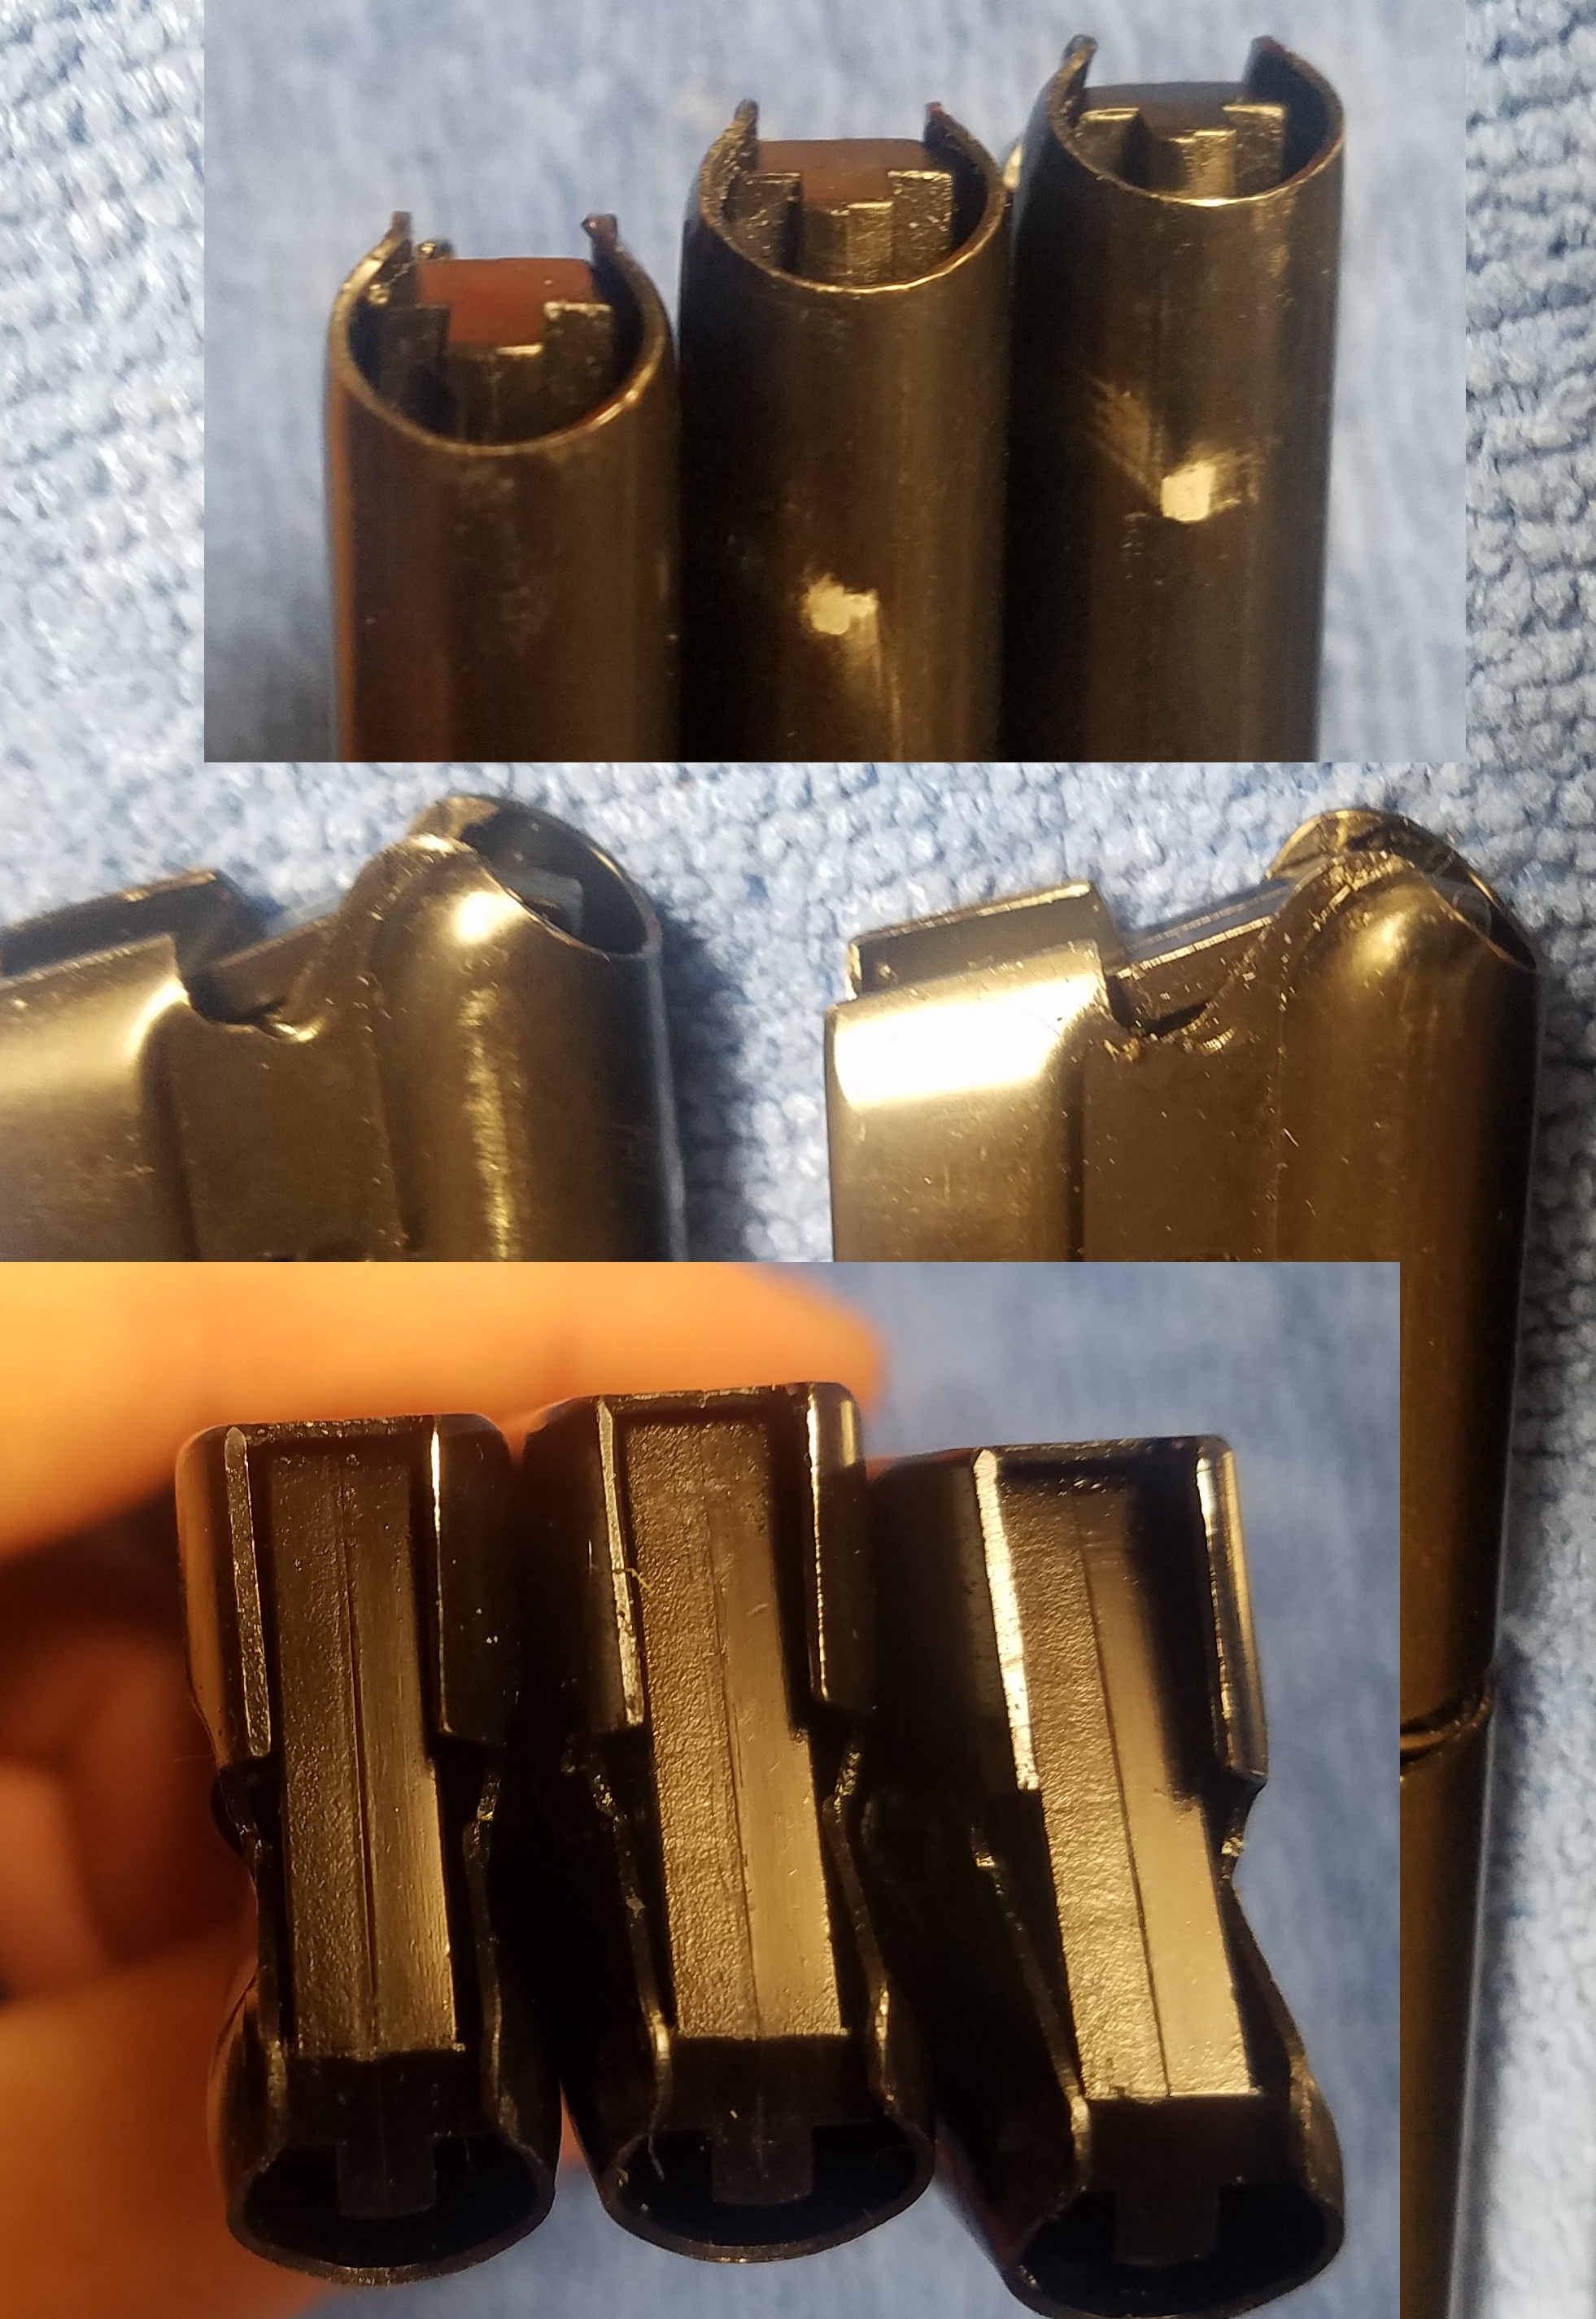 Smith & Wesson Model 41 - rounds damaged in magazine, prior to feeding Sw41mag3